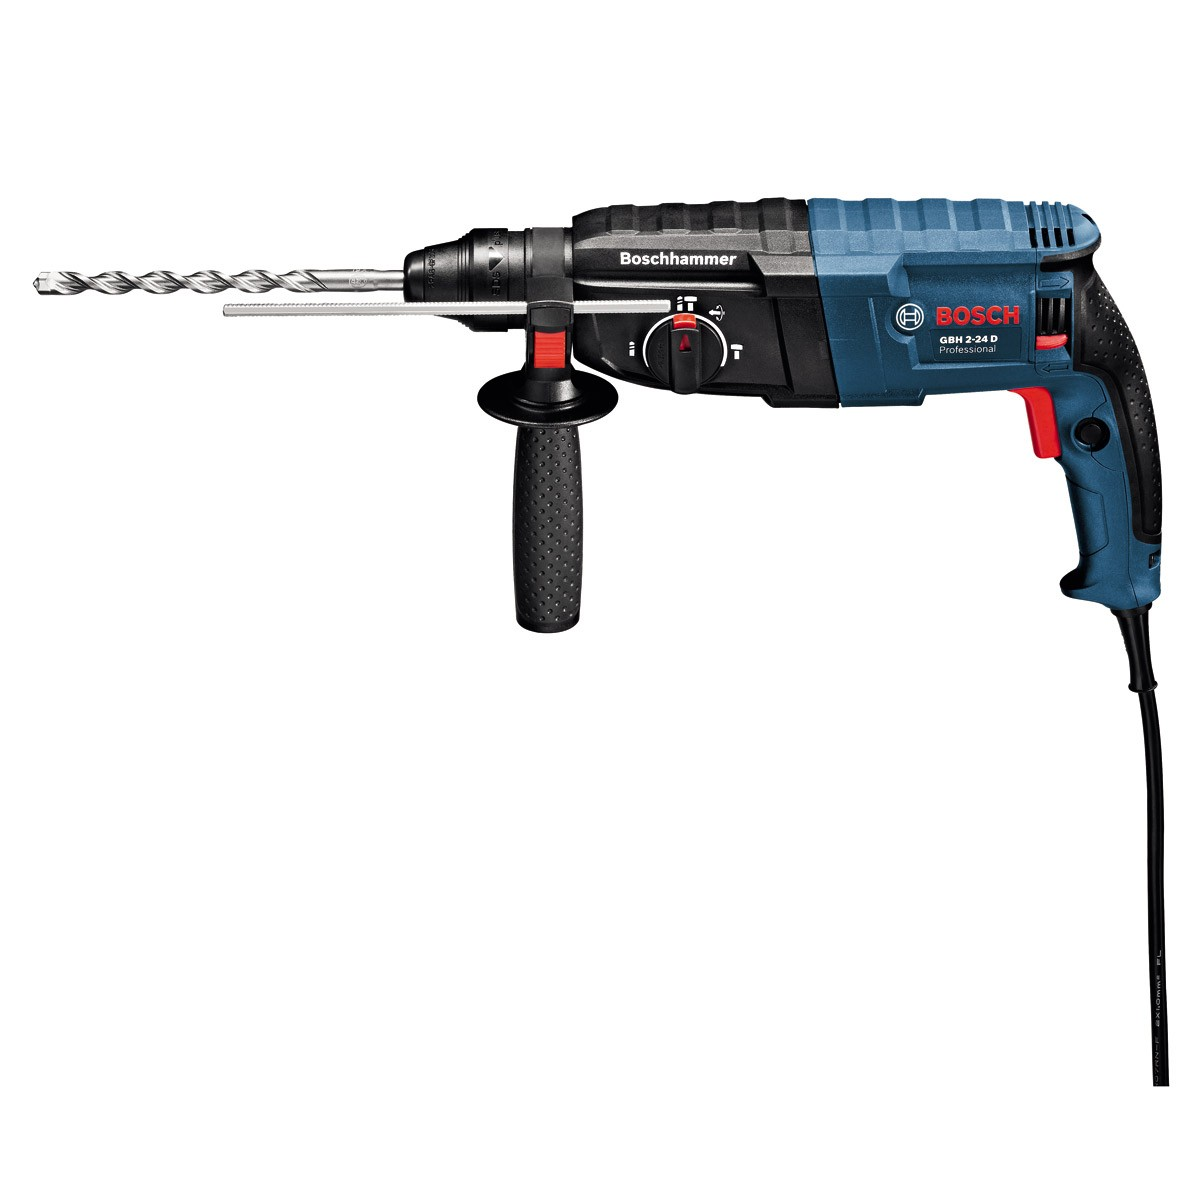 bosch gbh 2 24 d sds rotary hammer in carry case. Black Bedroom Furniture Sets. Home Design Ideas